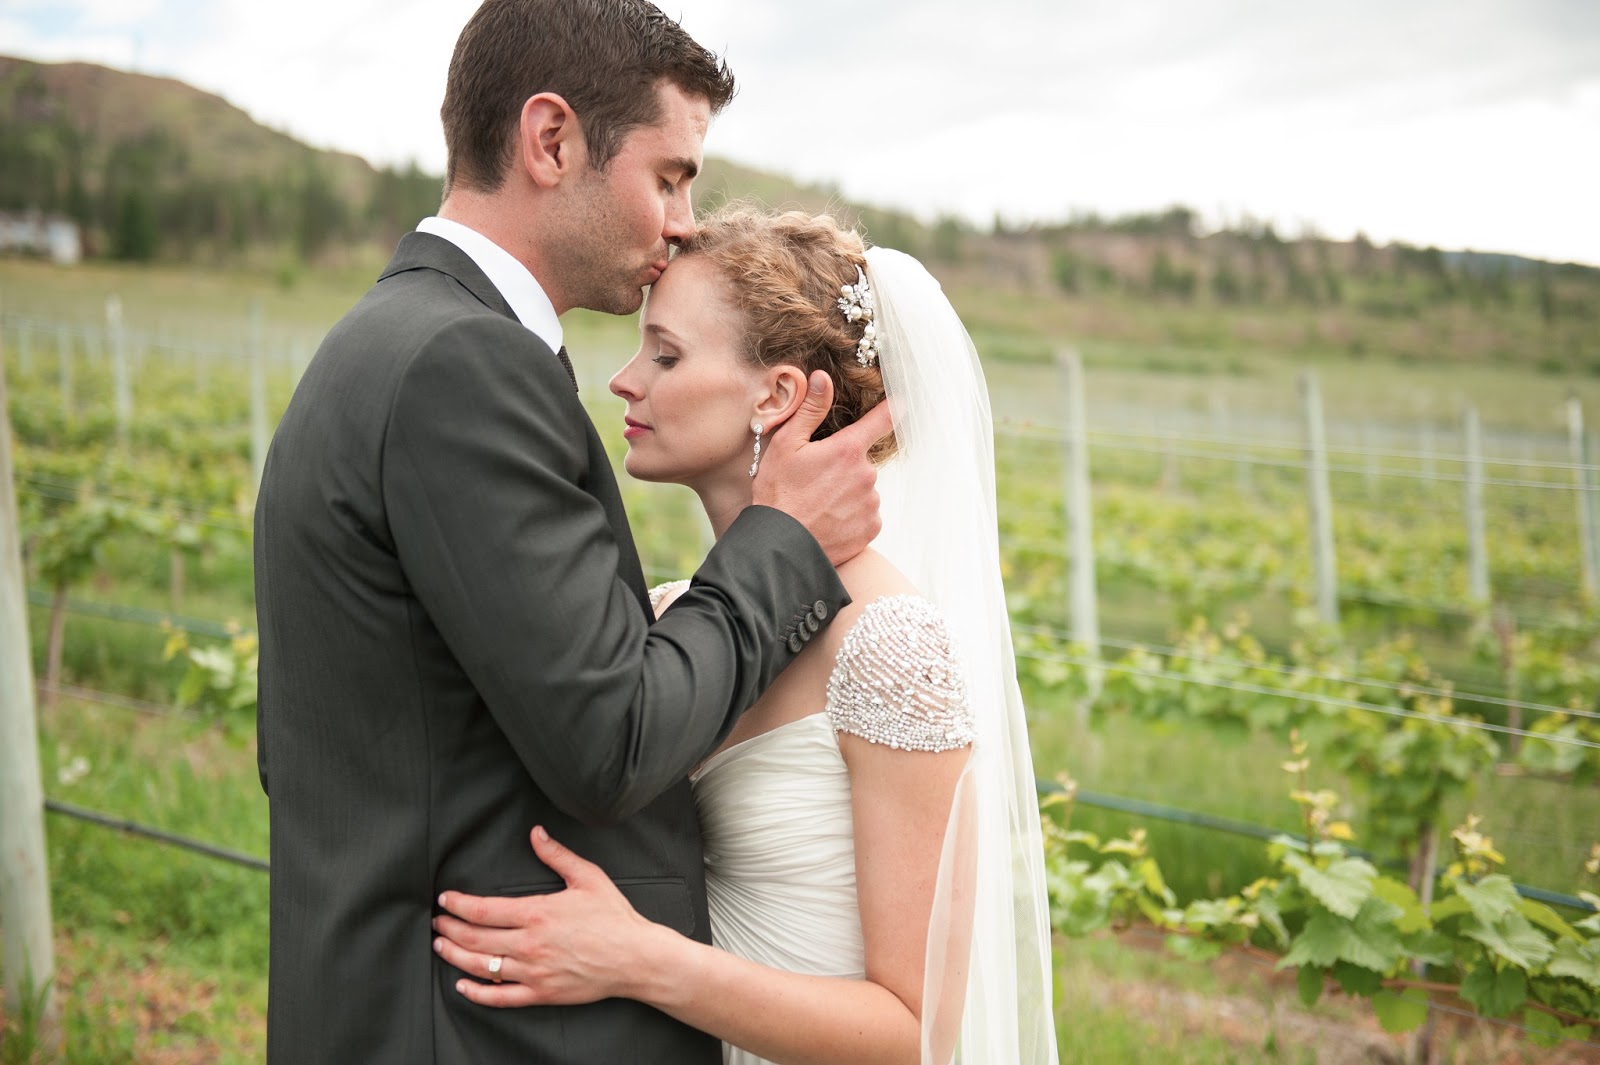 7-new-wedding-photography-trends_09